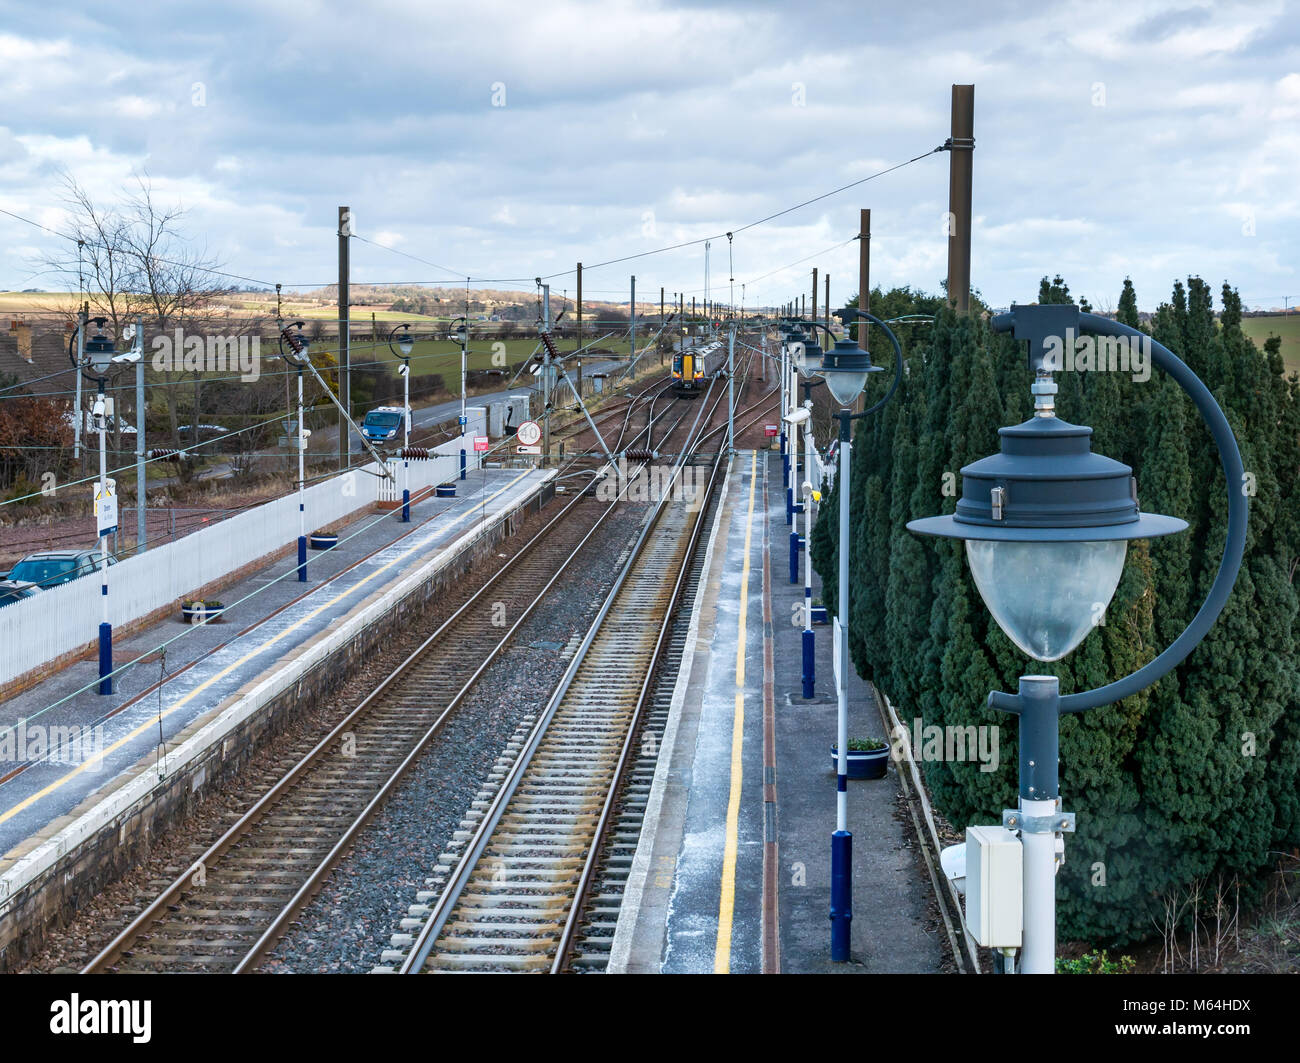 ScotRail local commuter train leaving Drem railway station, seen from above looking down on train tracks and overhead - Stock Image